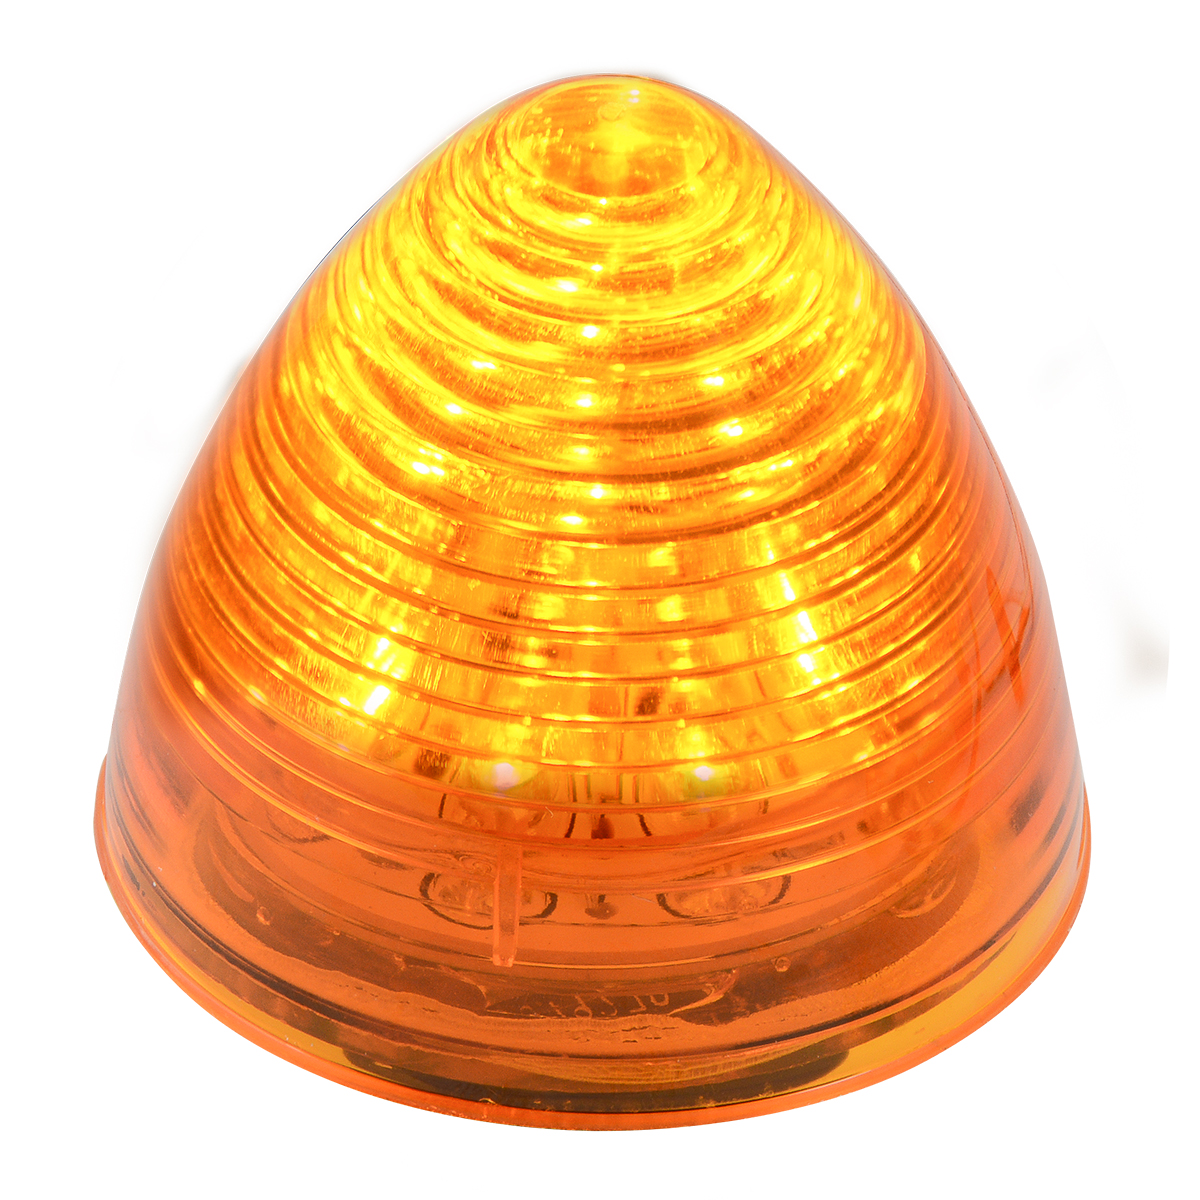 "#79270 2"" Beehive LED Flat Amber/Amber Light"